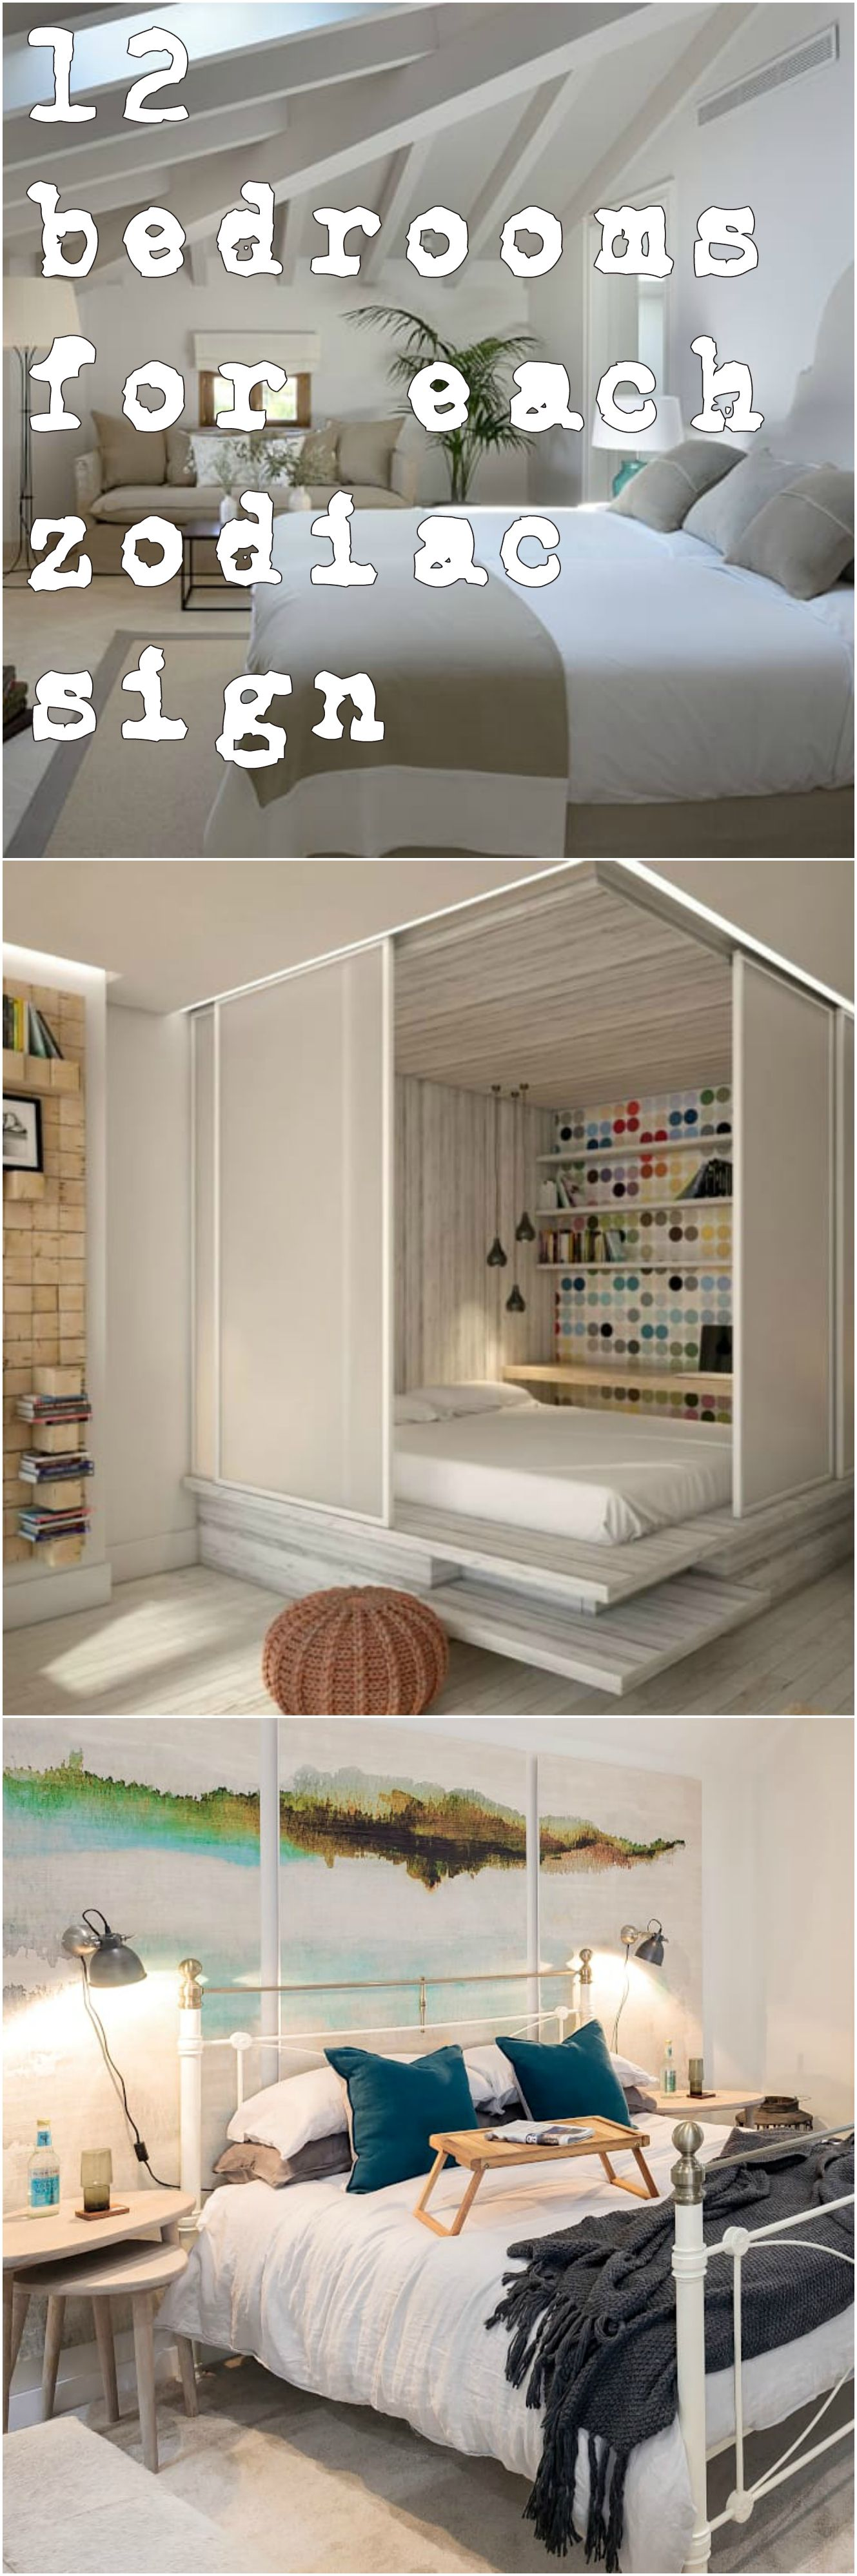 Donu0027t miss 12 bedrooms for each zodiac